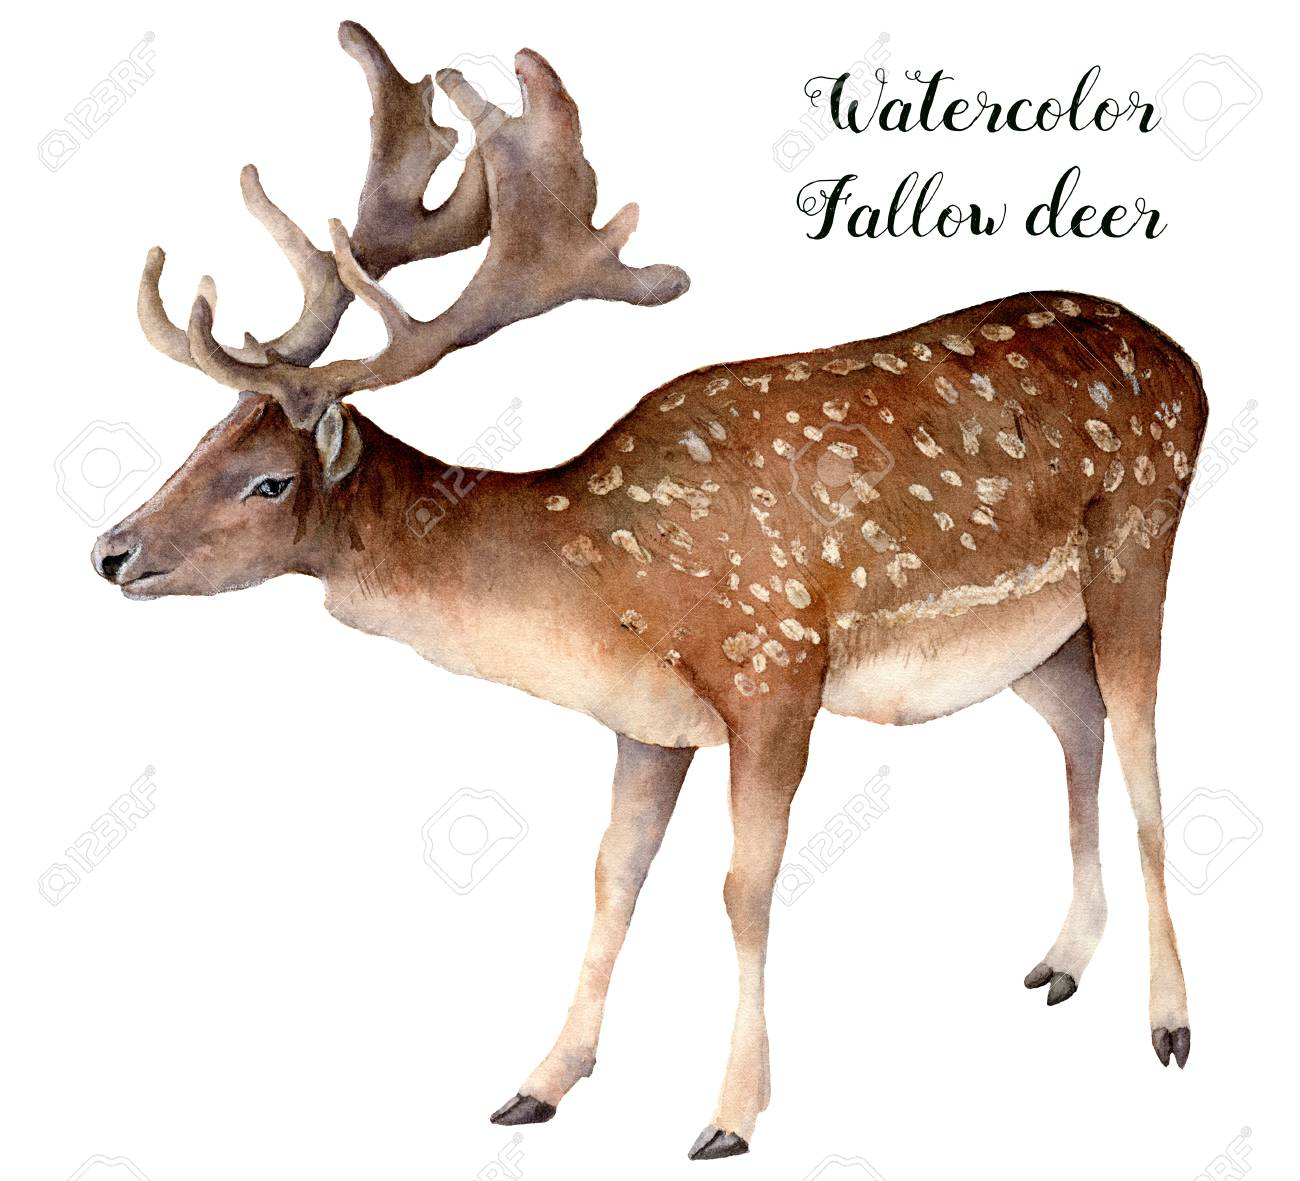 Watercolor fallow deer. Hand painted wild animal isolated on white background. Realistic male fallow for design, print or background. - 107536283